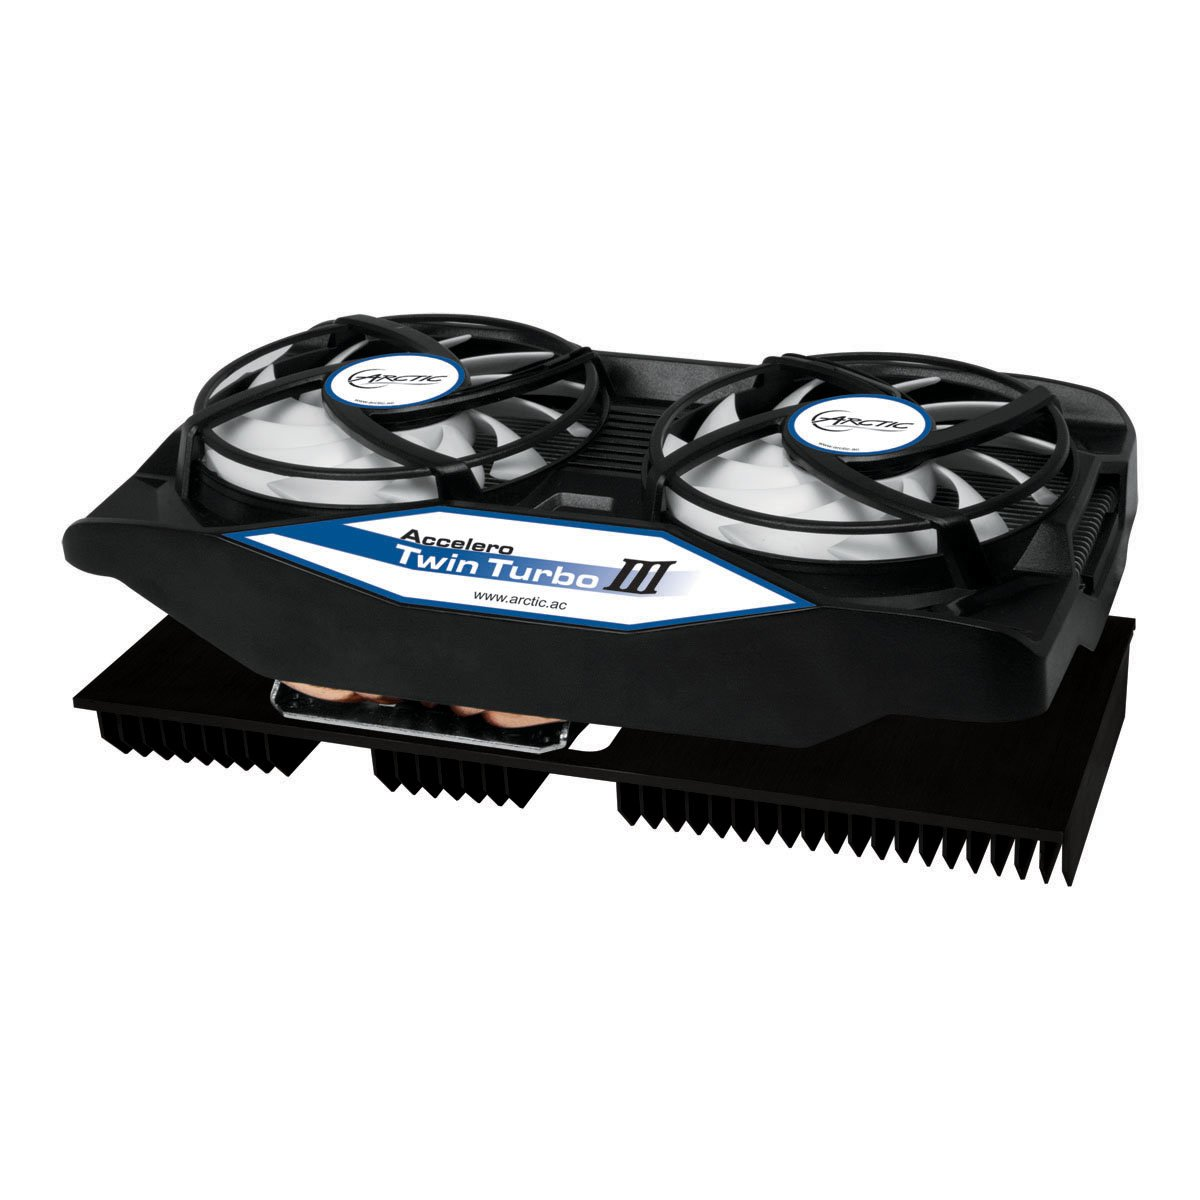 ARCTIC Accelero Twin Turbo III Graphics Card Cooler with Backside Cooler for Efficient RAM, VRM Cooling and VGA Cooler DCACO-V820001-GBA01 by ARCTIC (Image #1)